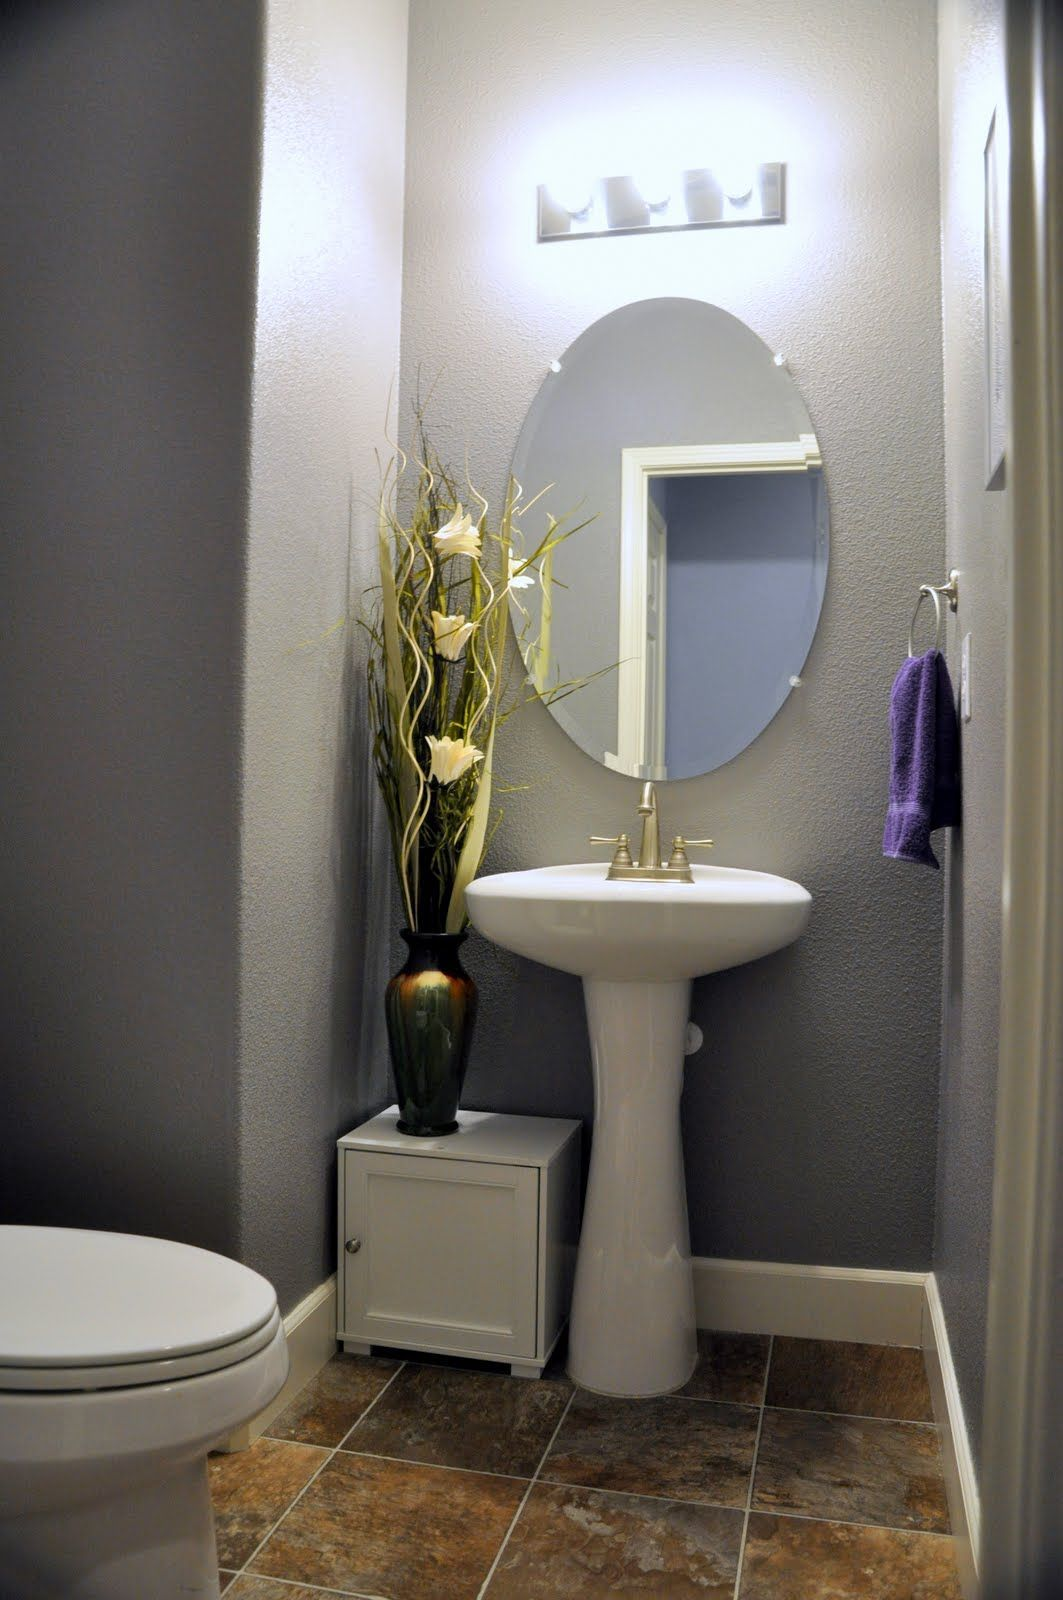 Even If The Bathroom Sink Is Small You Can Get Creative With It These Bathroom Sink Design Ideas Are Powder Room Small Powder Room Decor Powder Room Storage